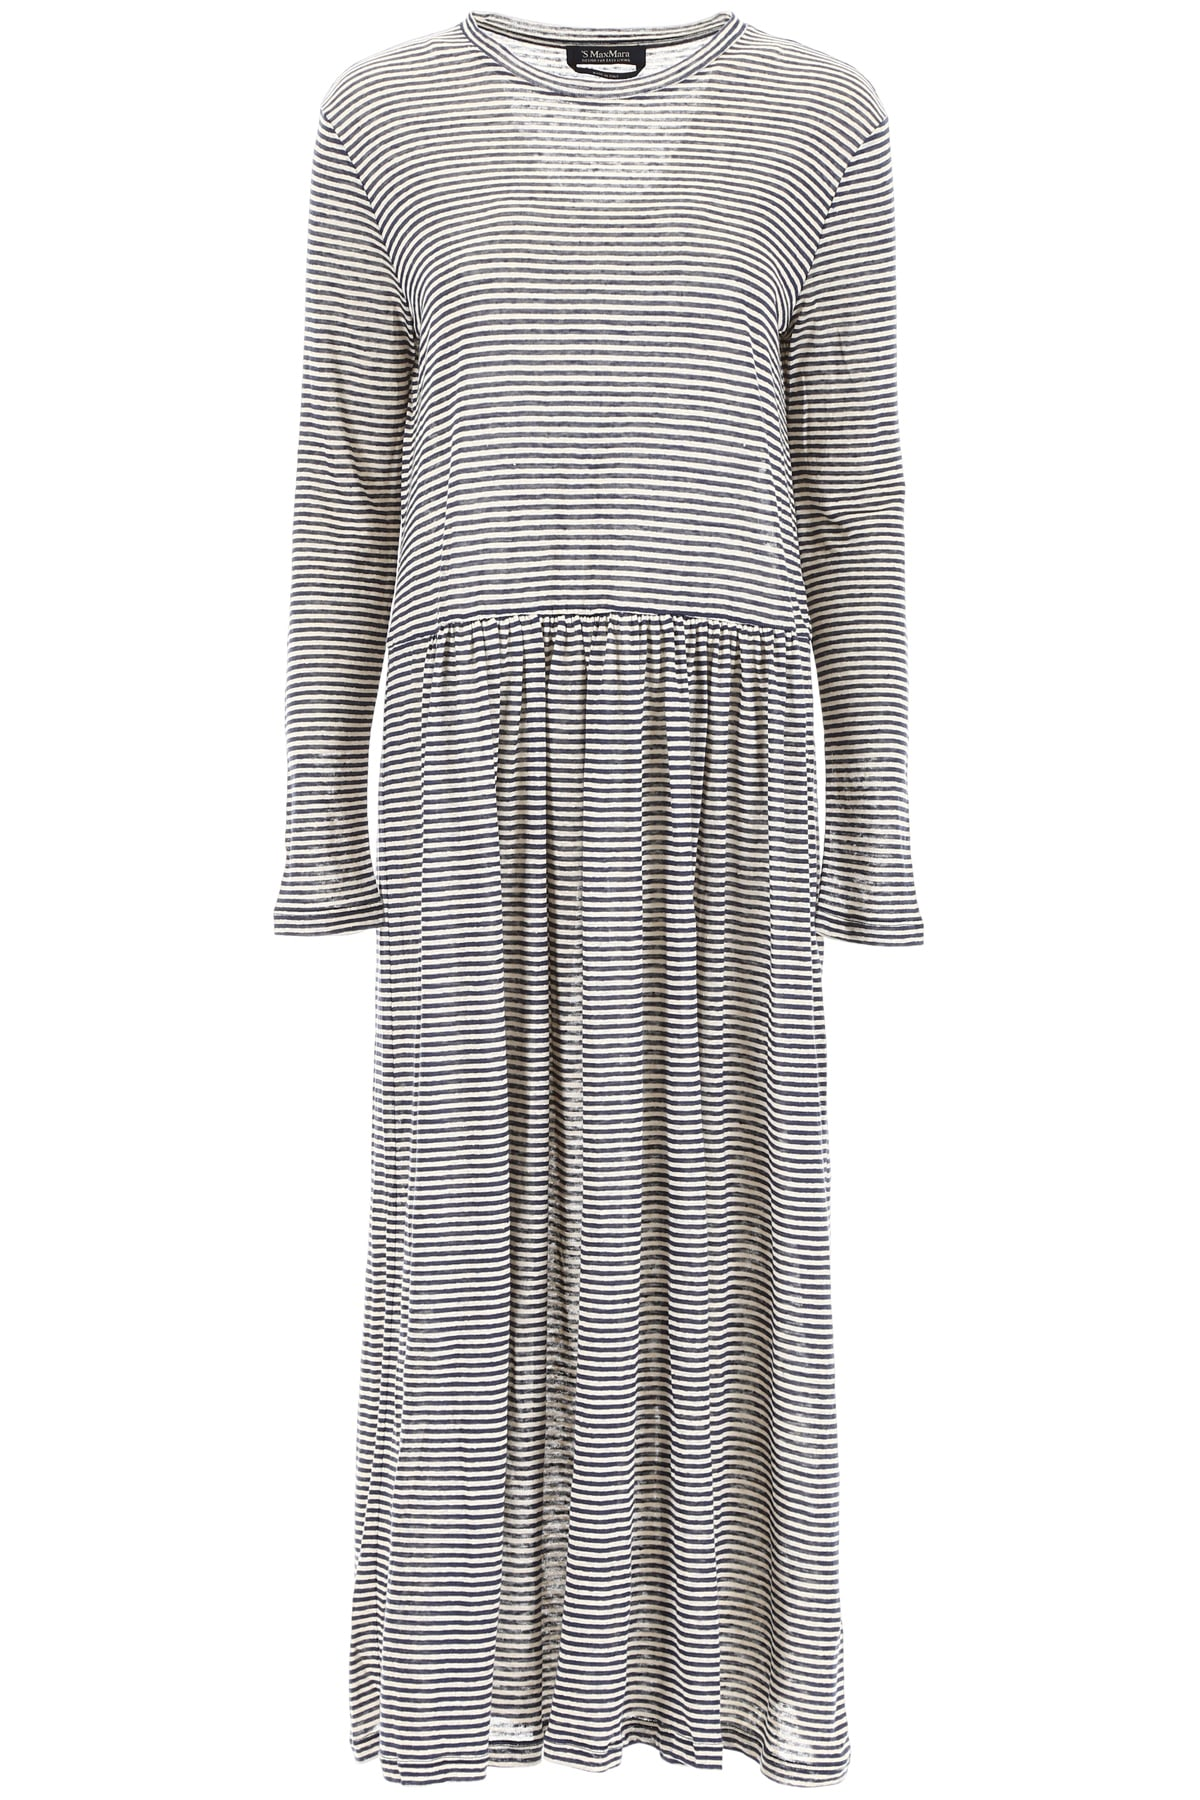 S Max Mara Here is The Cube Addurre Dress